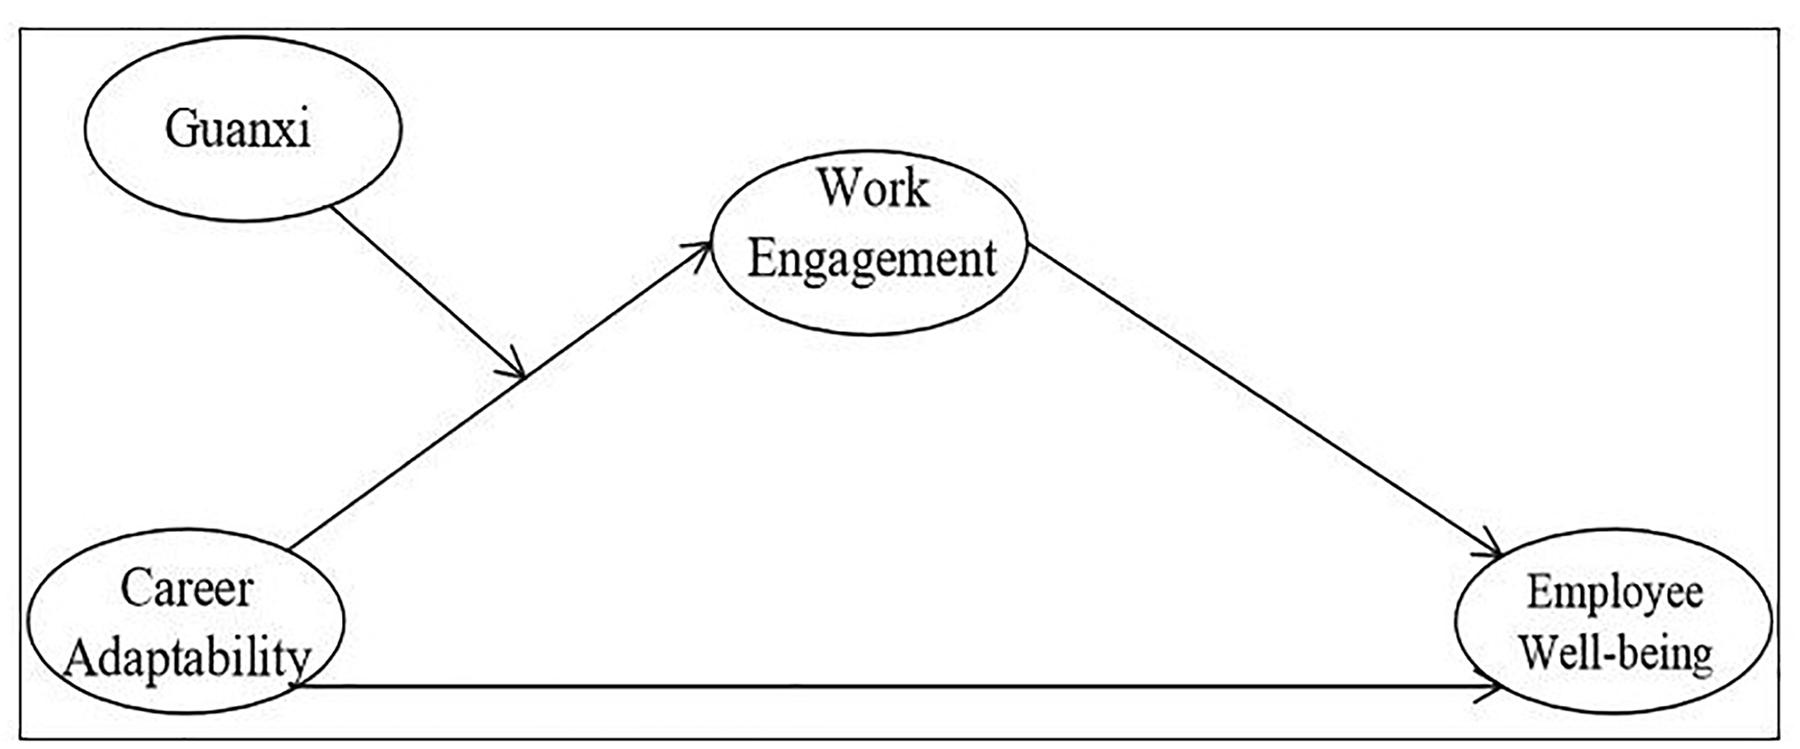 Frontiers | Career Adaptability, Work Engagement, and